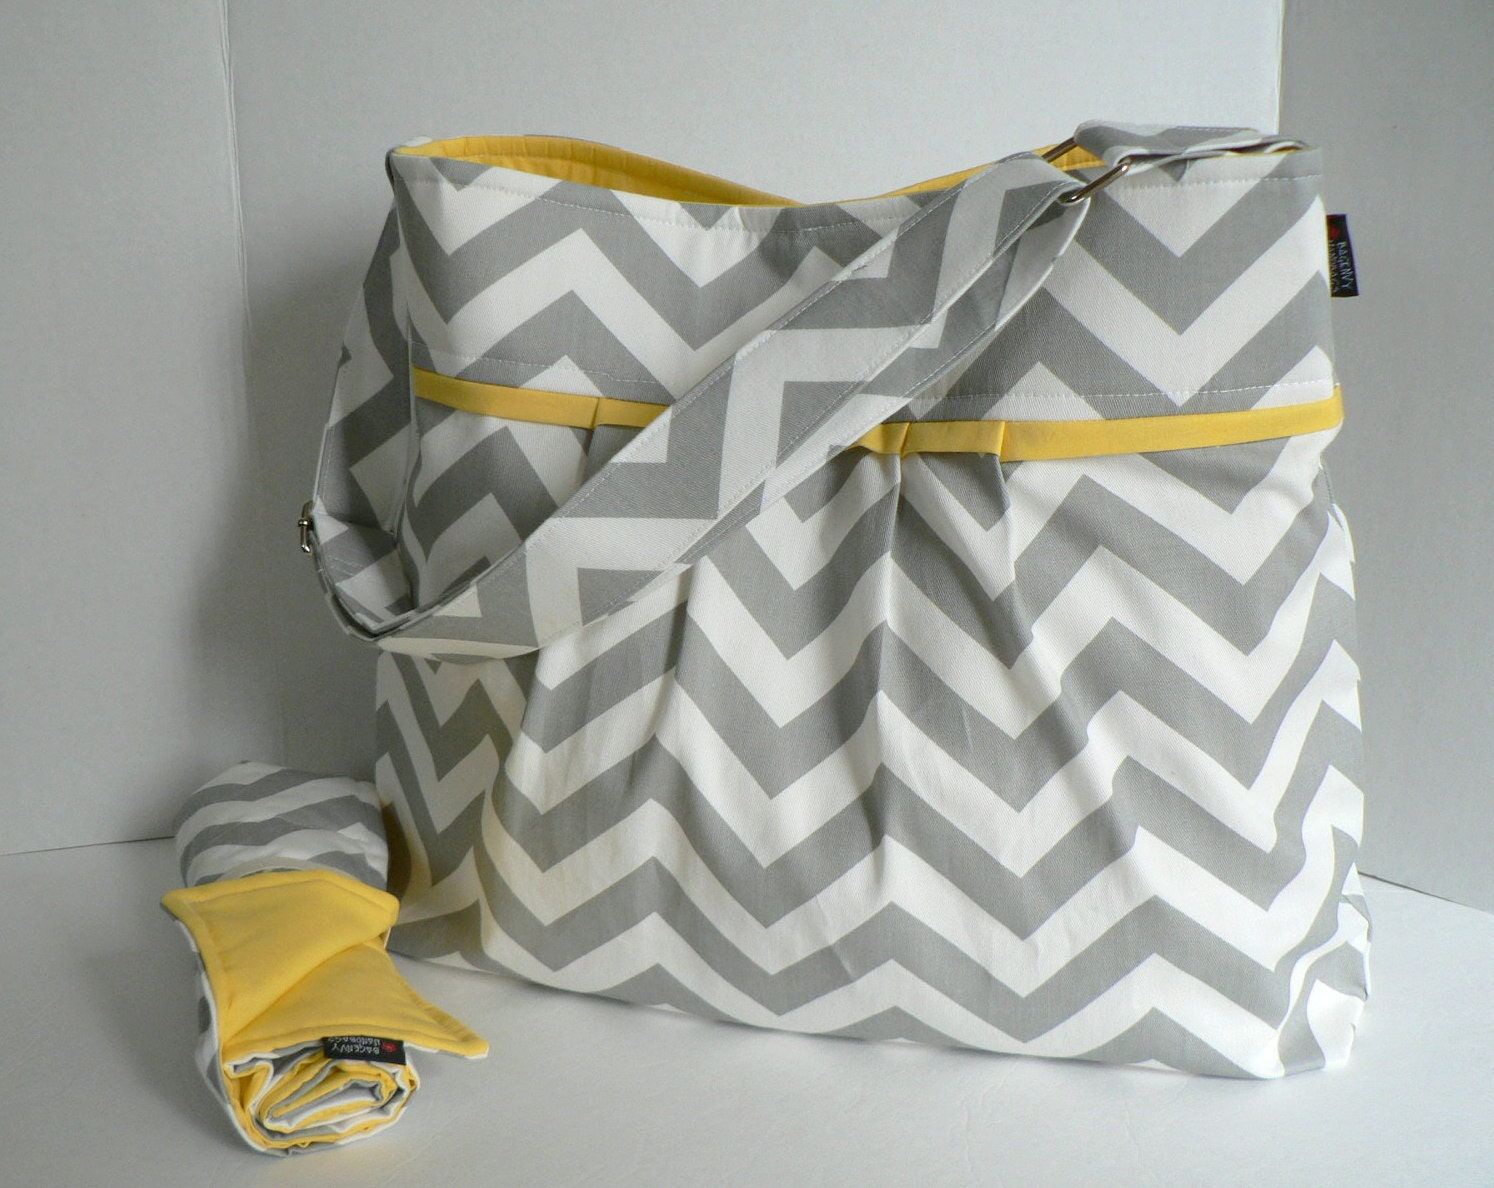 Monterey Bag Large Diaper Bag Set - In Grey Chevron and Yellow - Adjustable Strap and Elastic Pockets